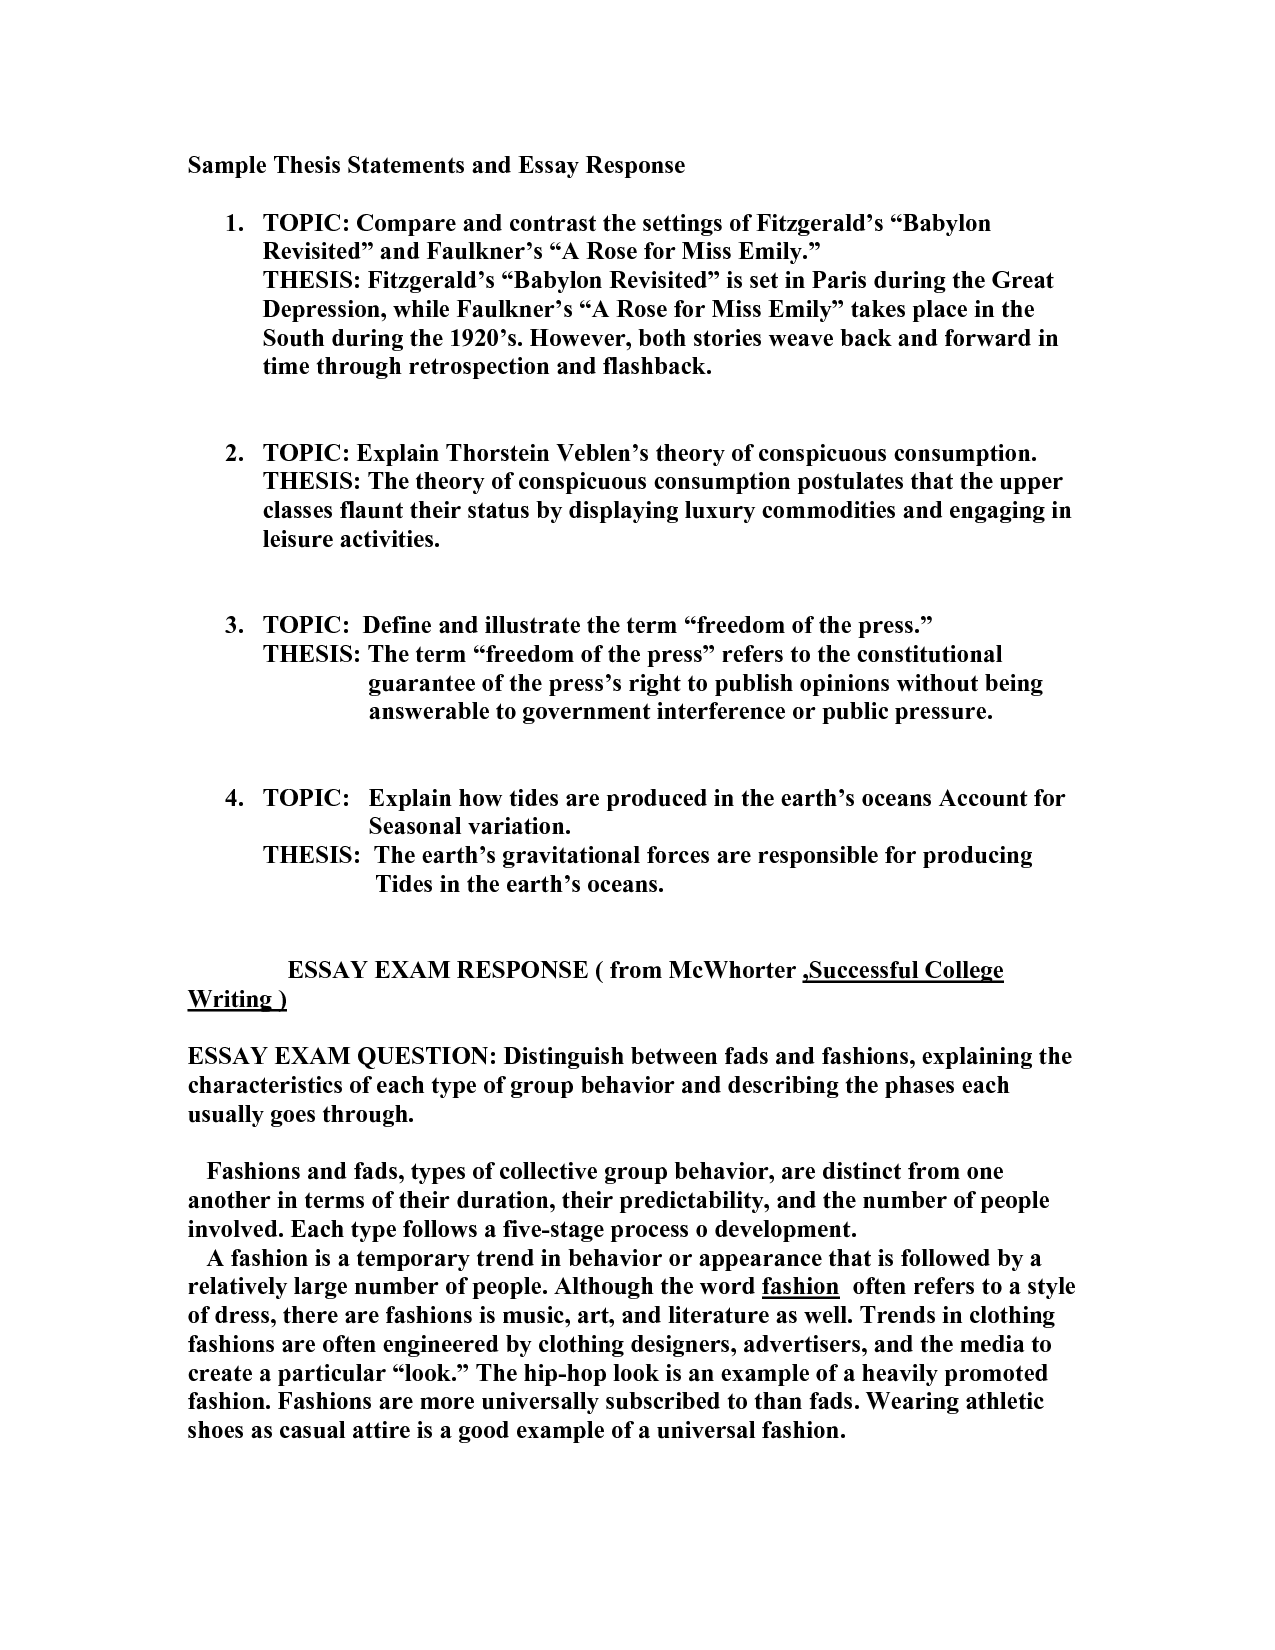 009 Essay Thesiss 6na1pphnb7 Unusual Thesis Examples Persuasive Topics Expository Critical Statement Full